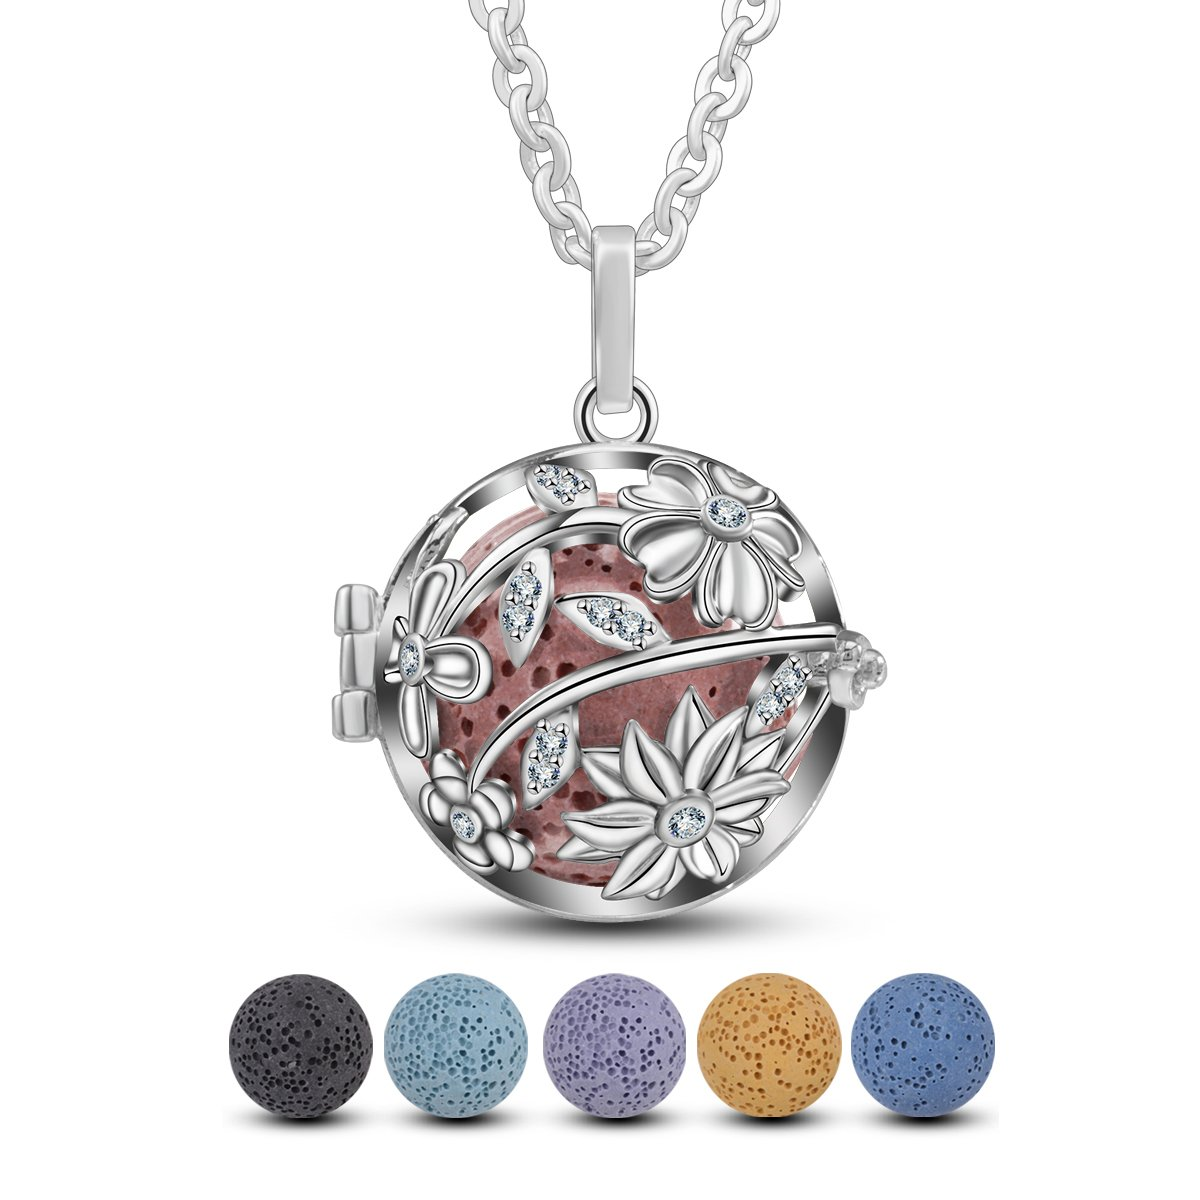 EUDORA Sunflower Locket Essential Oil Diffuser Necklace Lava Stone Necklace with 24'' Chain and 5 Lava Stone Beads